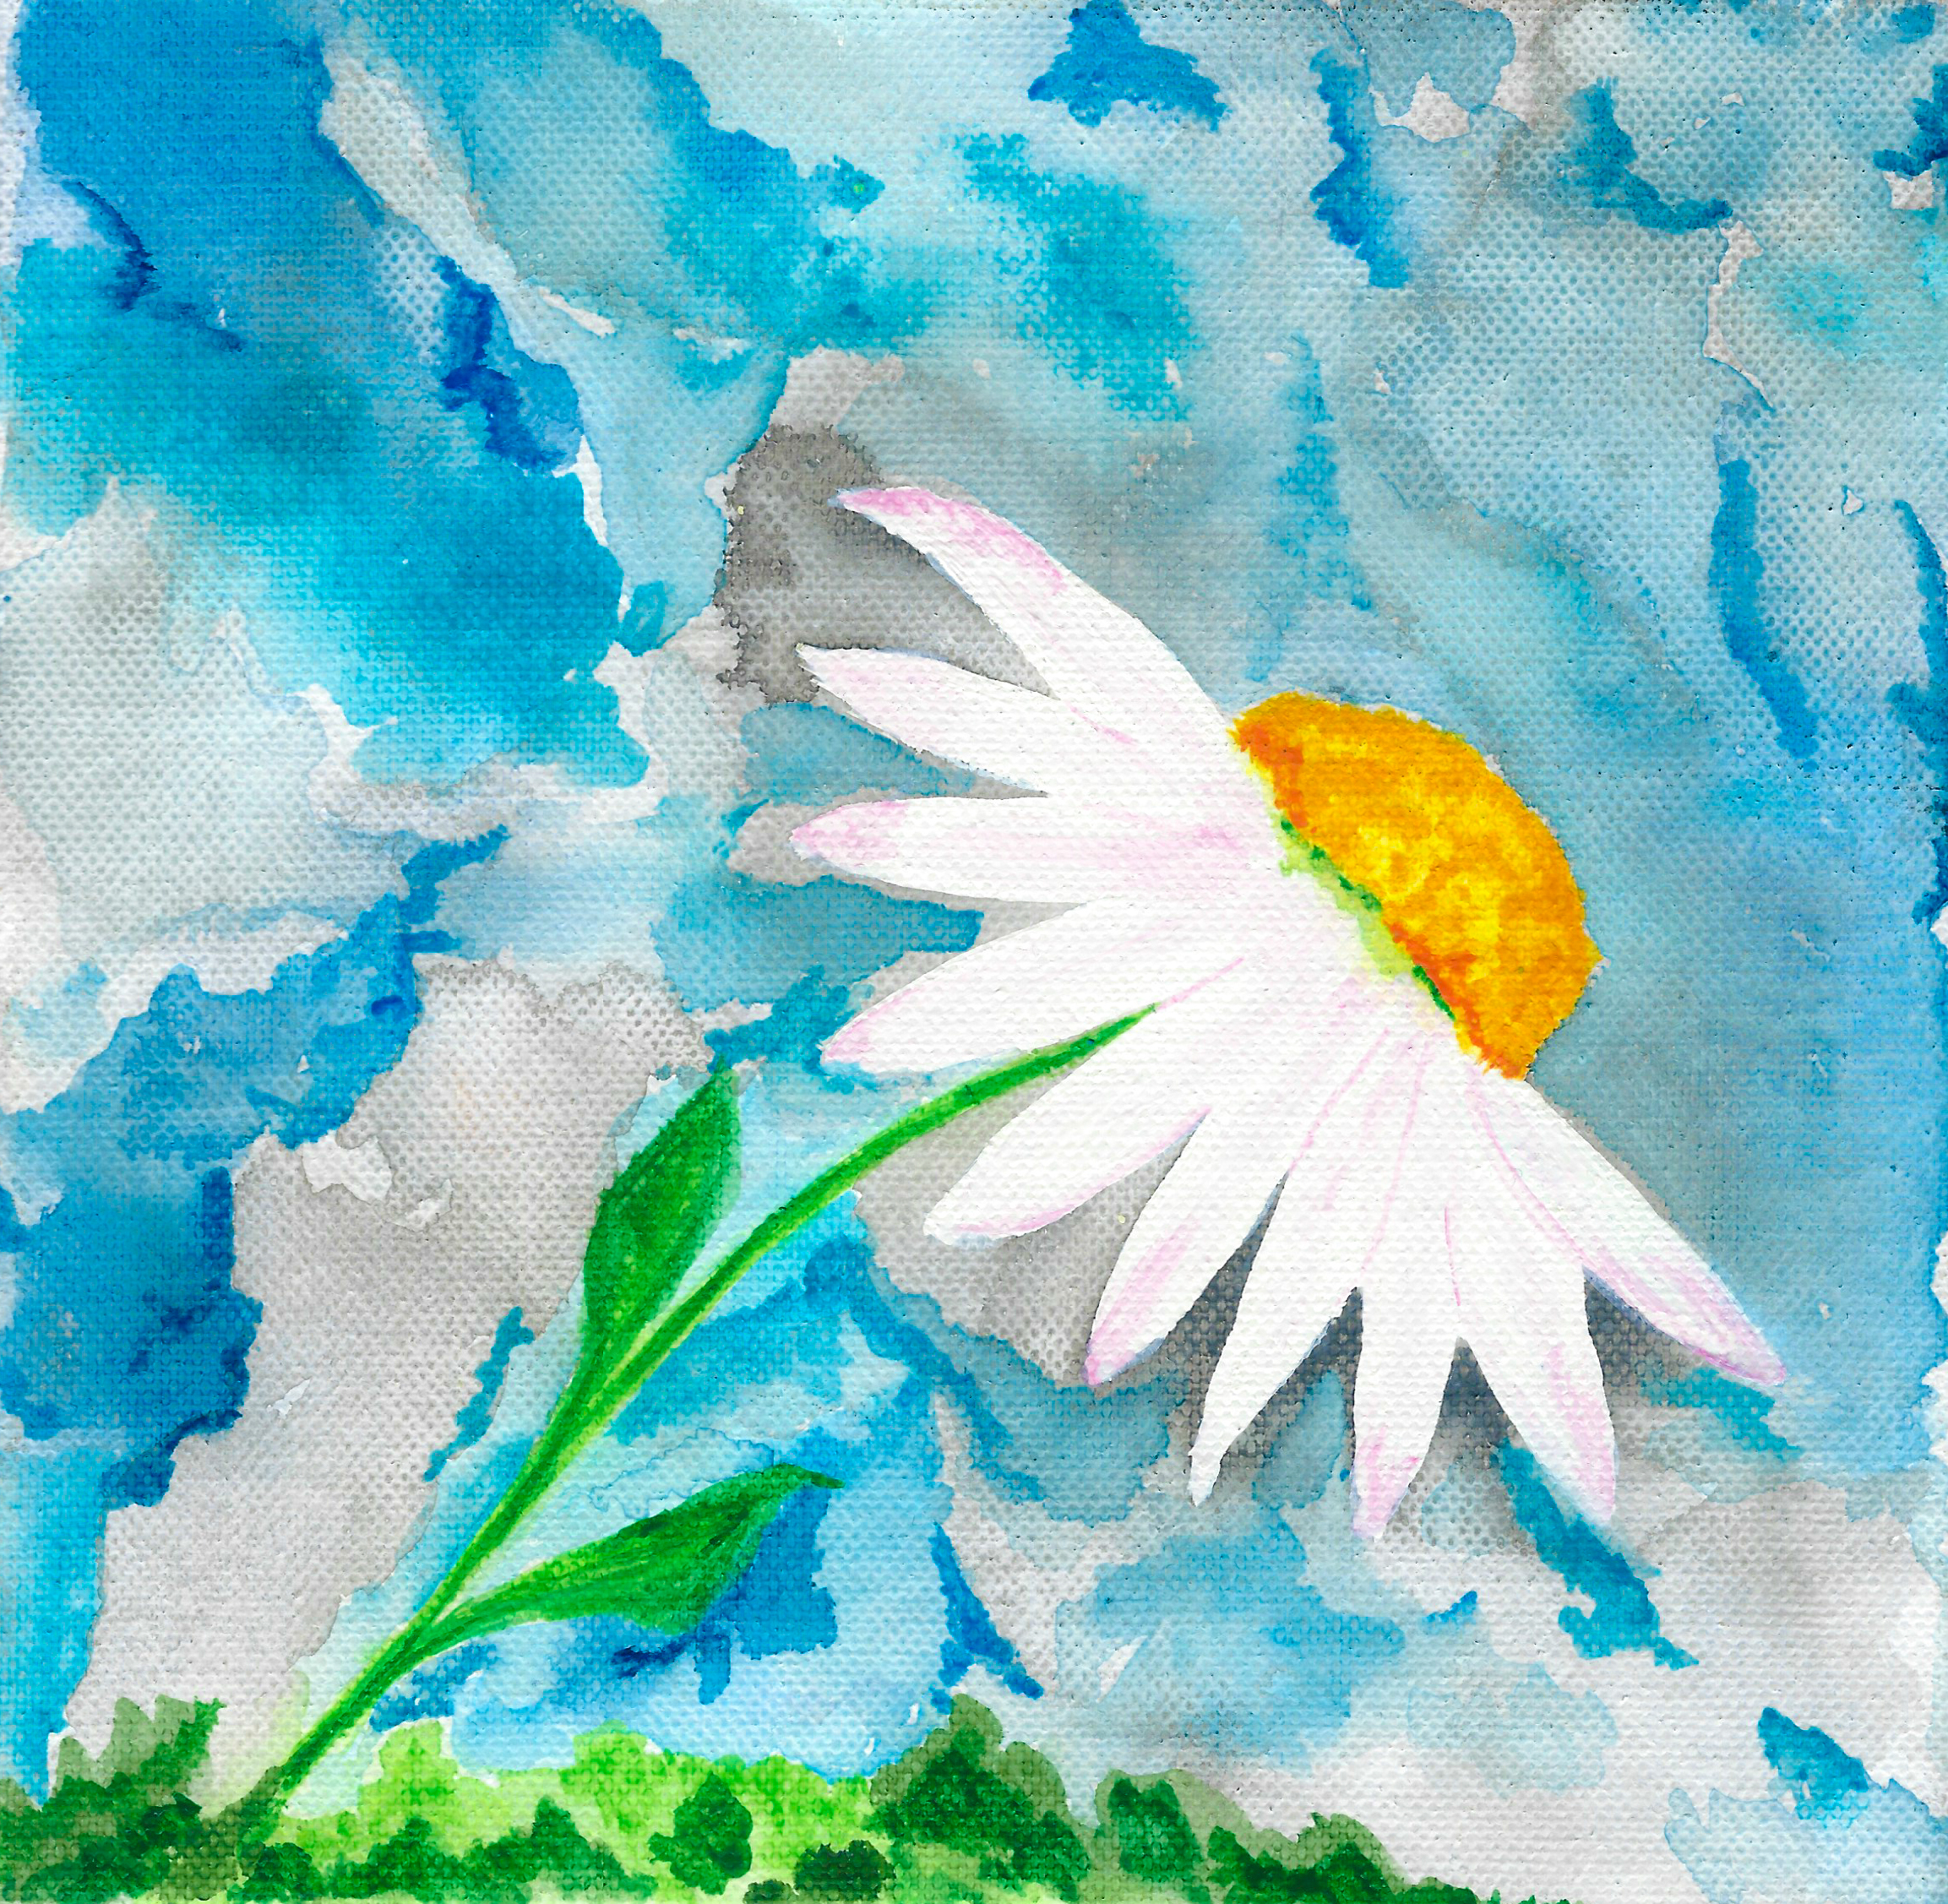 Solitary Daisy Reaches for the Sky - Watercolour - Gallery